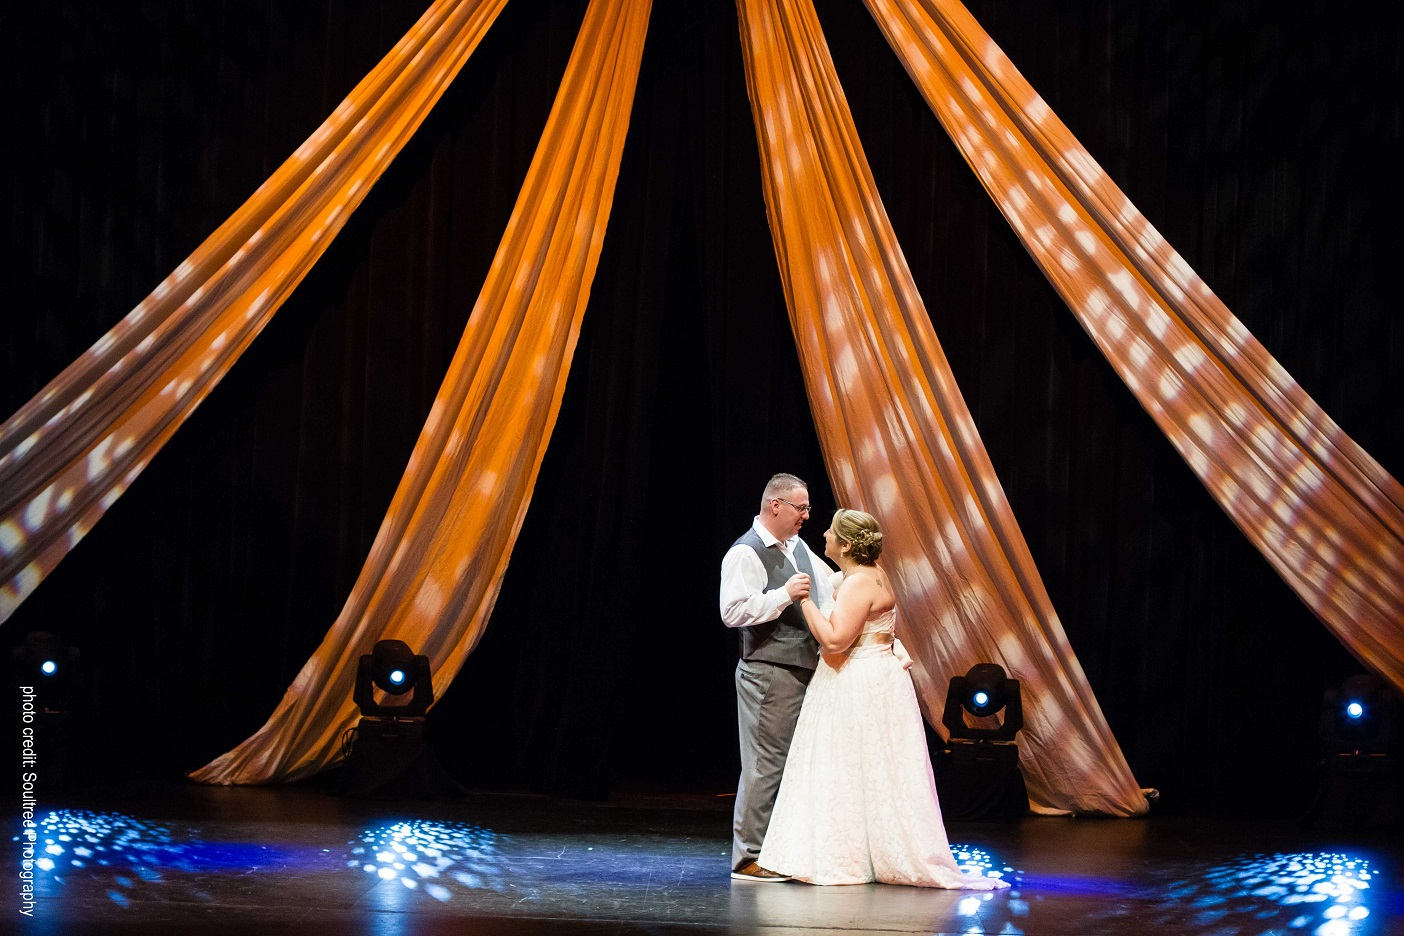 A memorable first dance on stage at the Algonquin Theatre. Photo: Soultree Photography